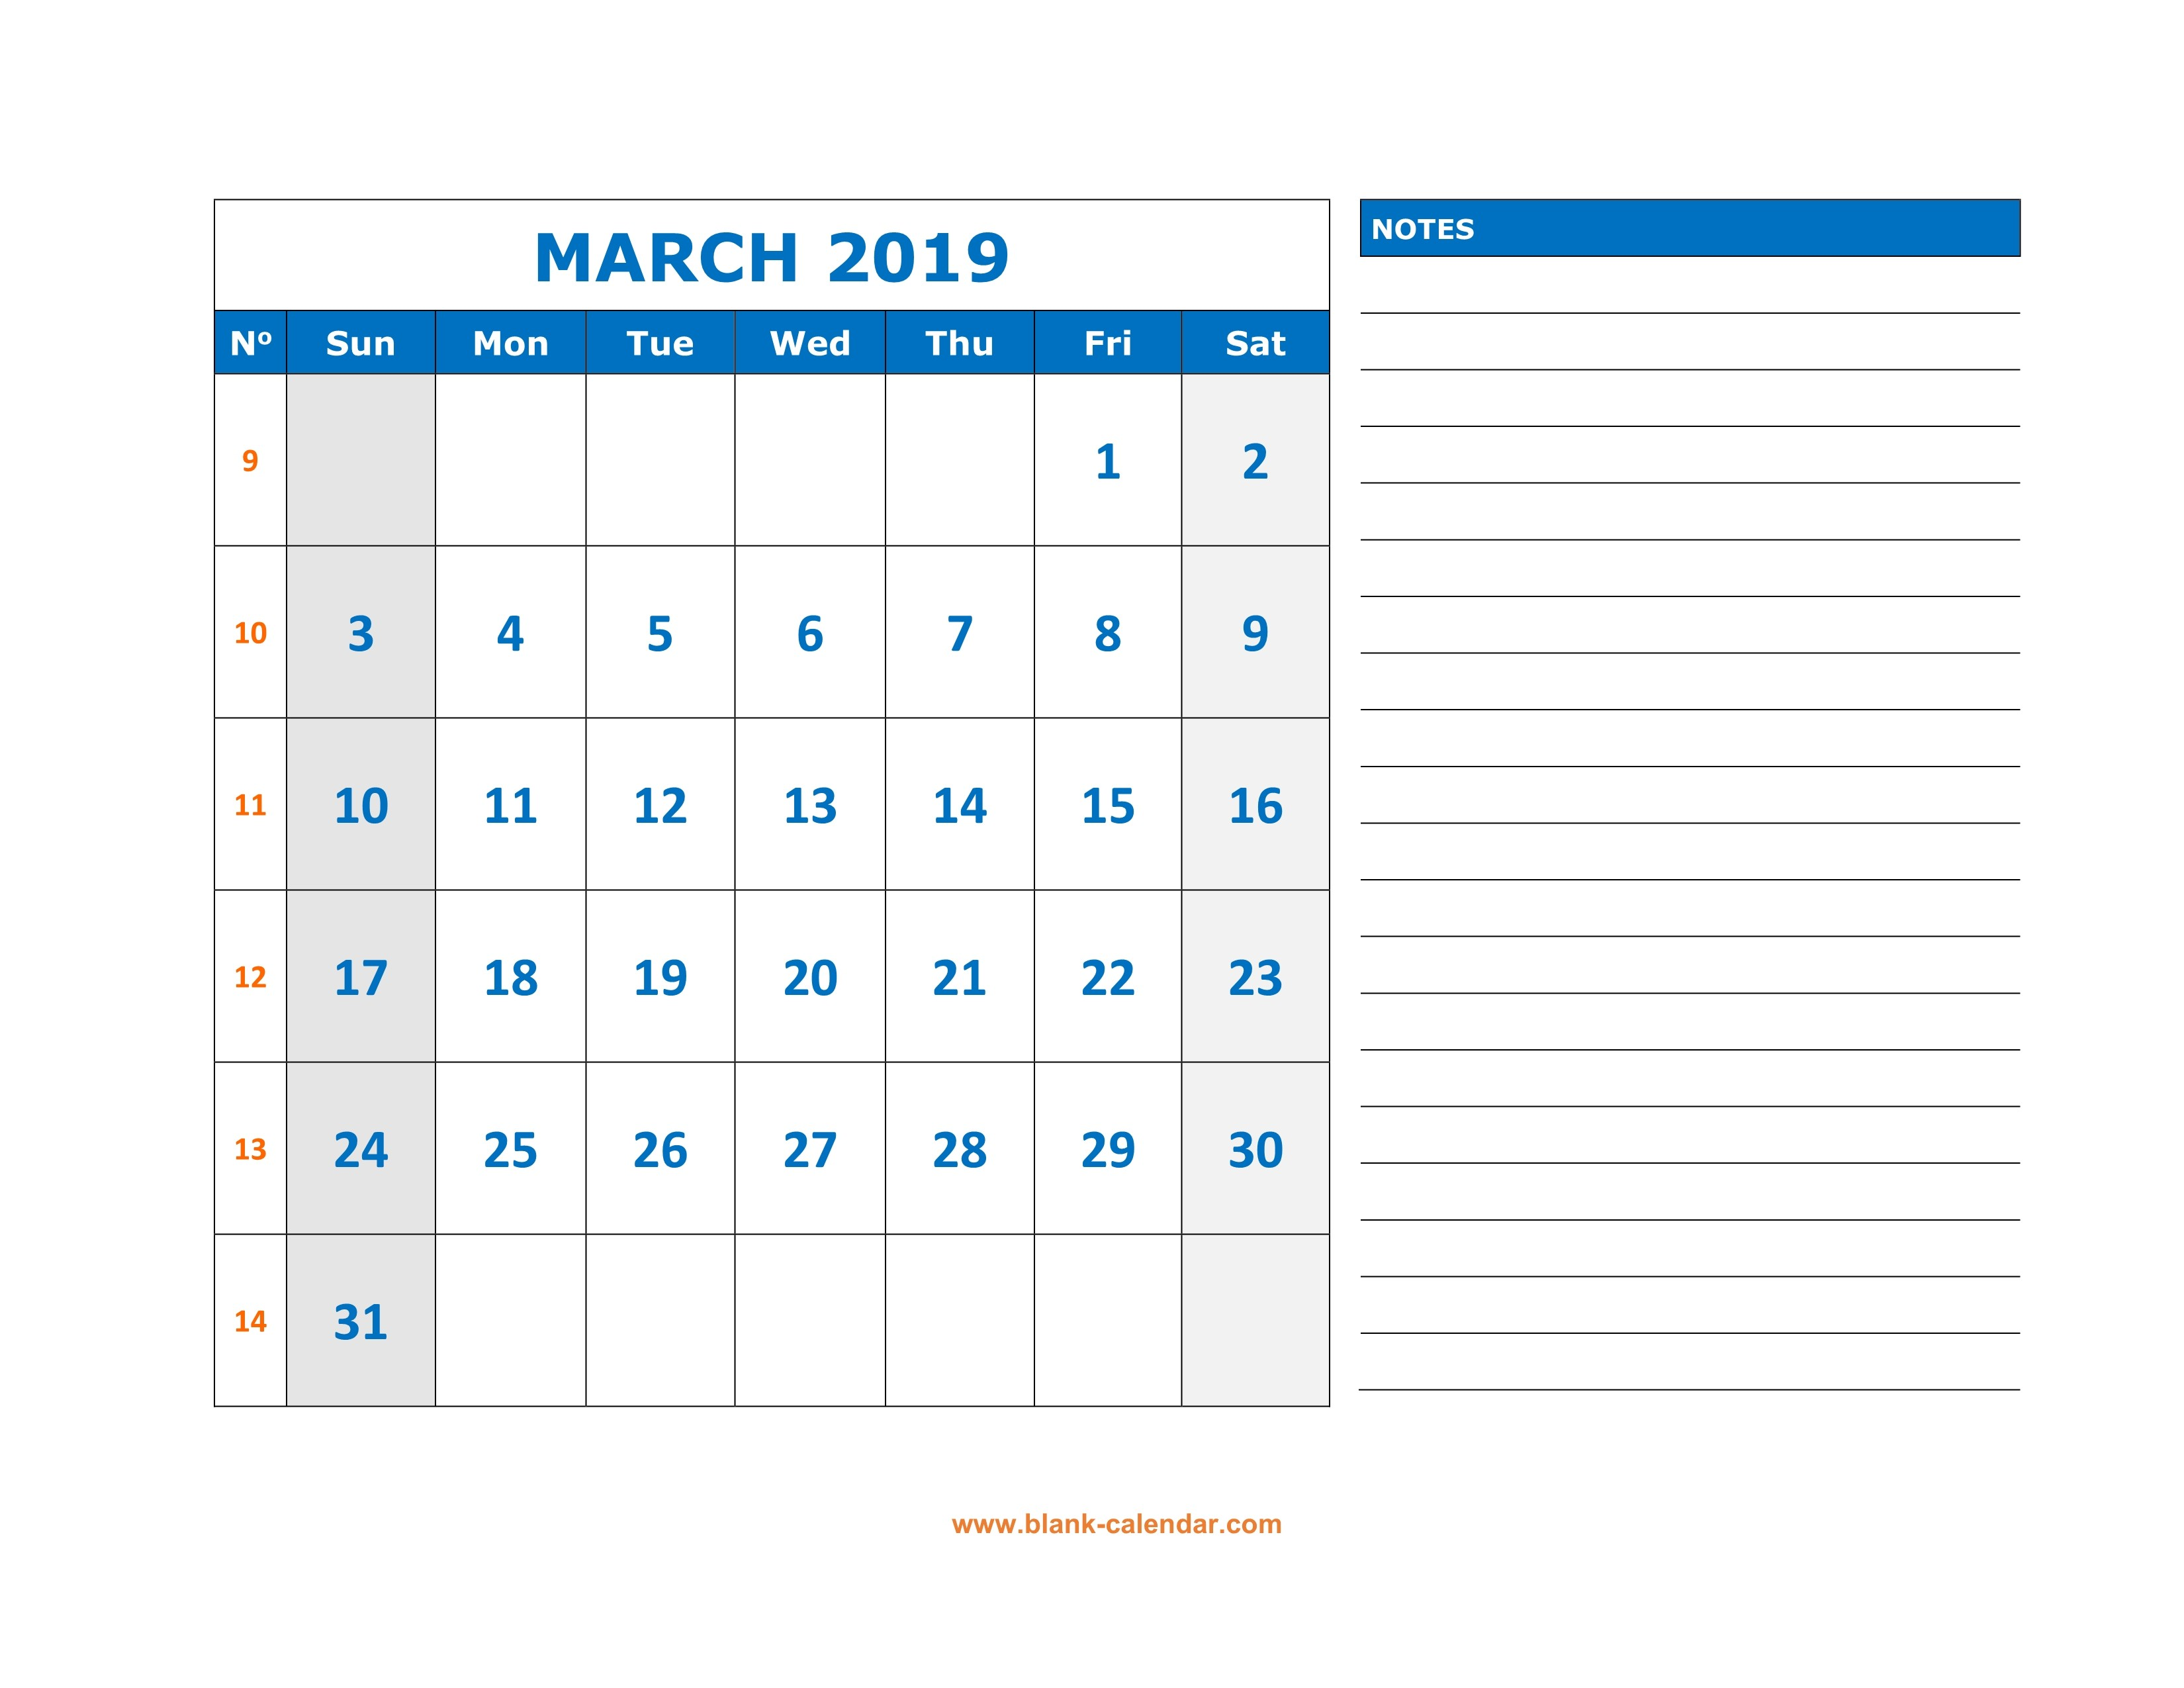 March Calendar 2019 Más Reciente Free Download Printable March 2019 Calendar Large Space for Of March Calendar 2019 Más Populares February March Calendar 2019 2018 Printable Calendar Store